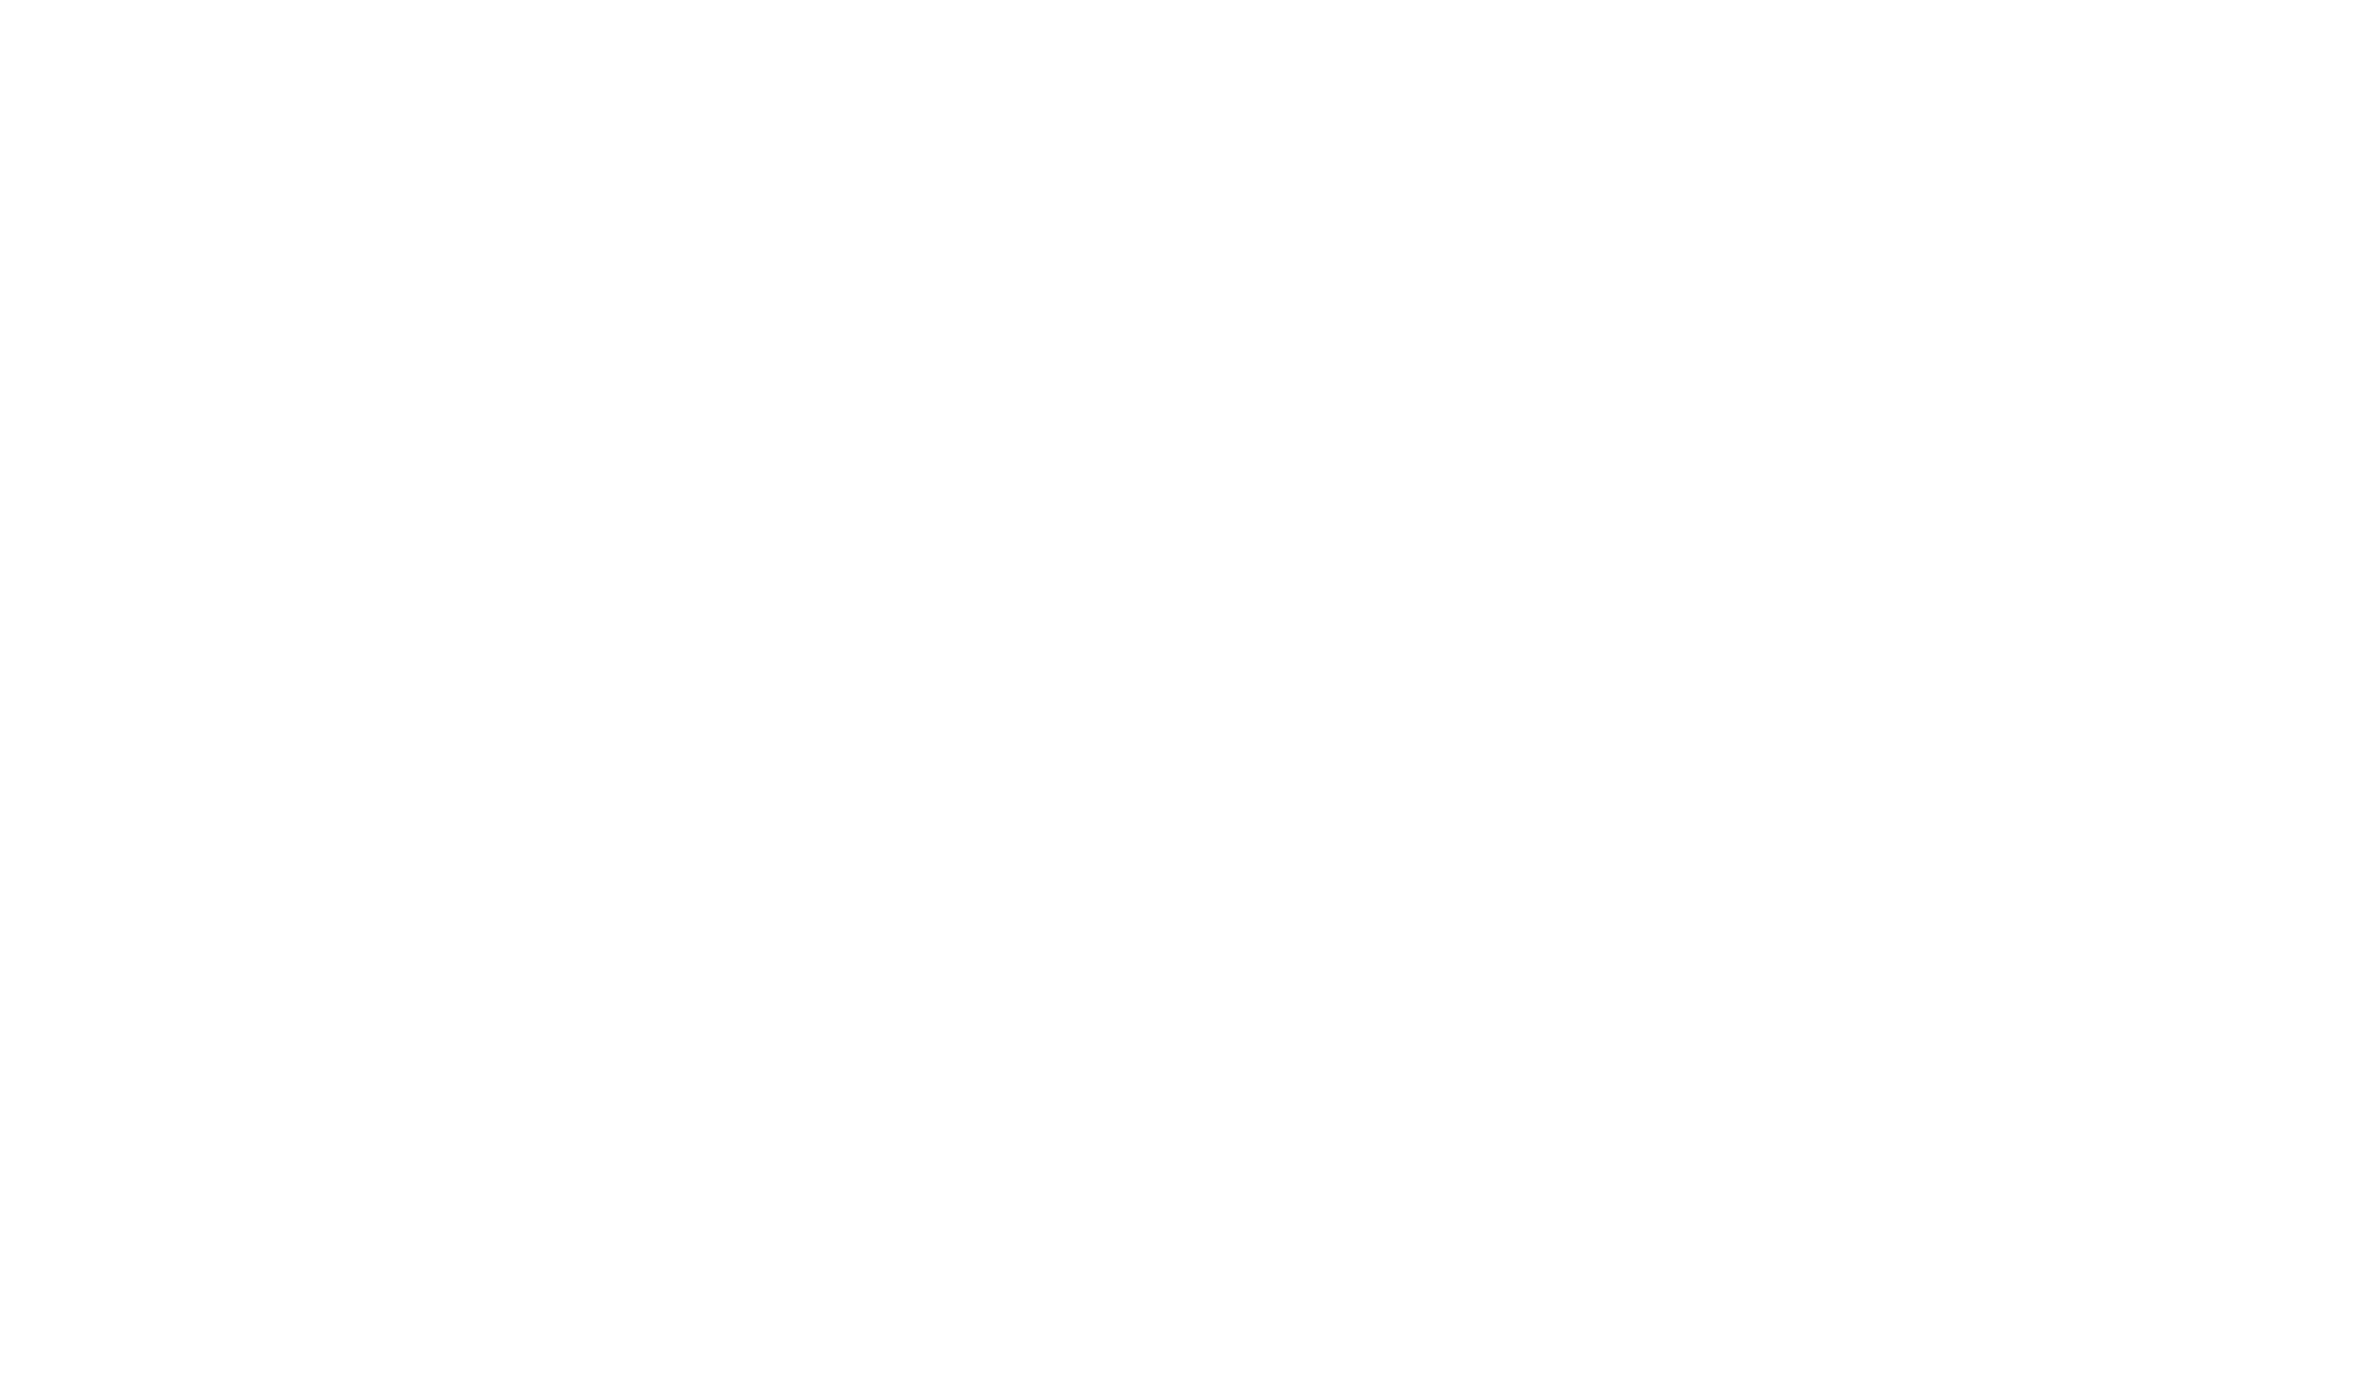 Hayward Miller Ltd